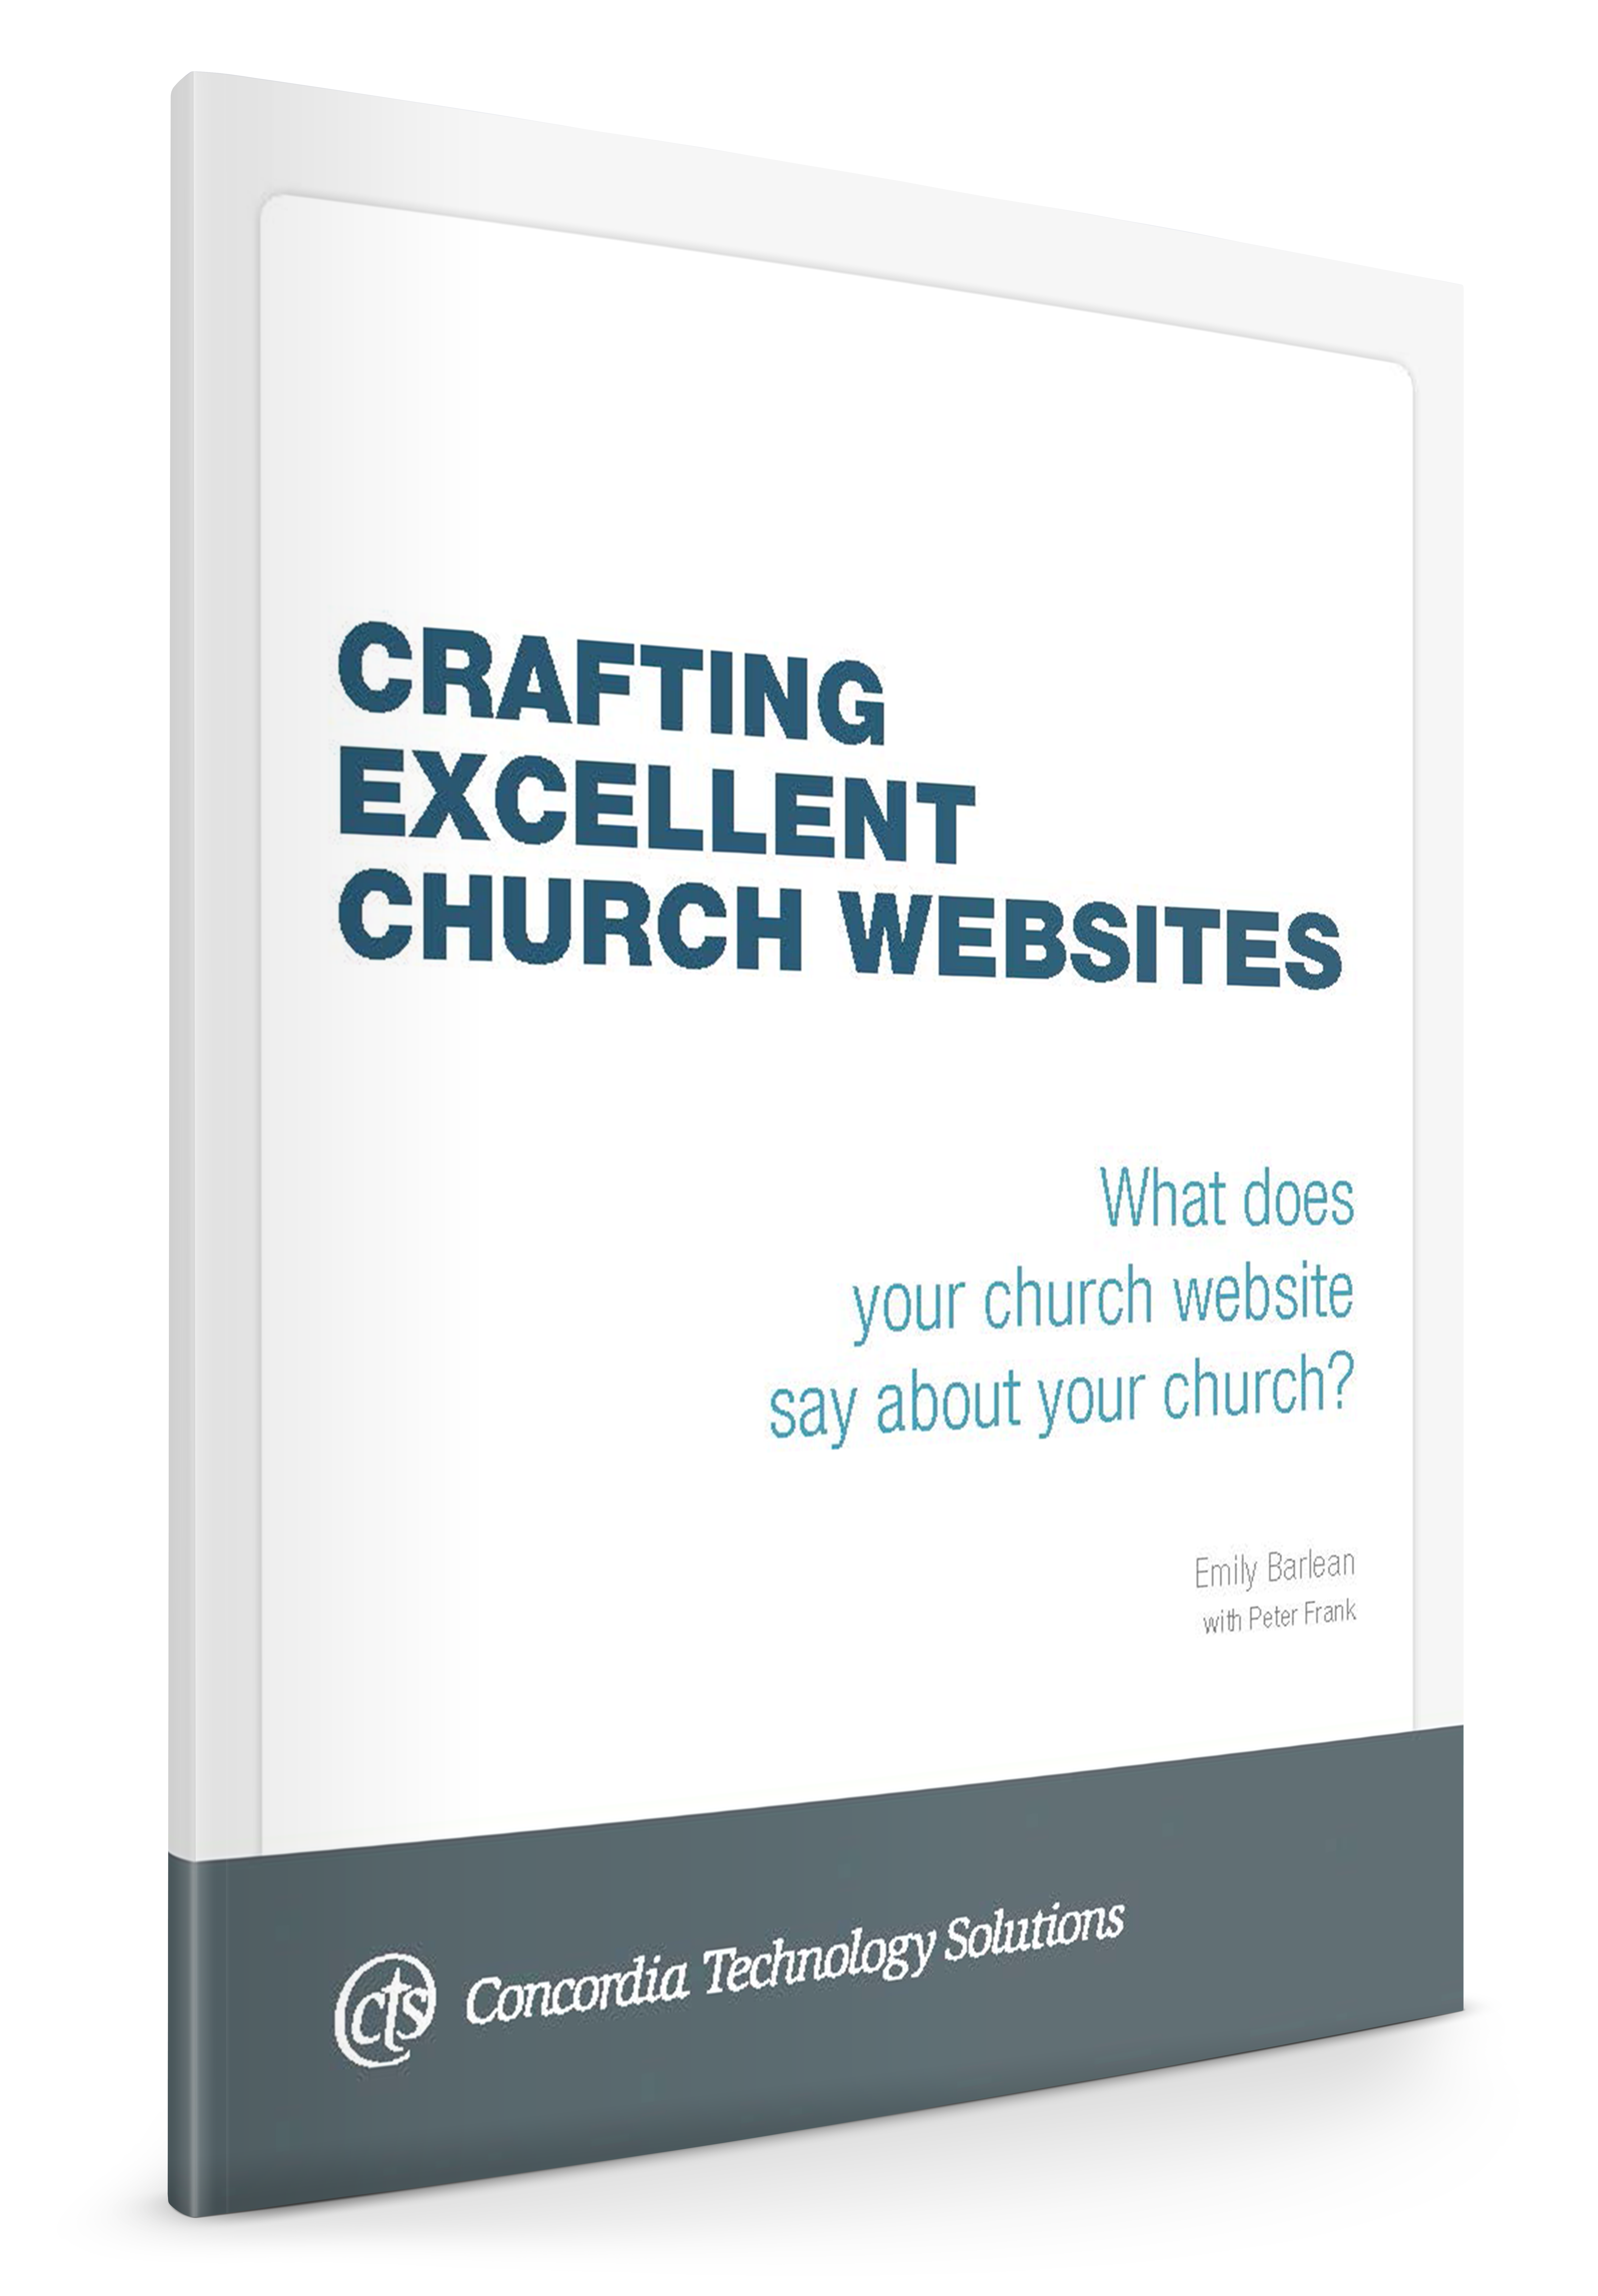 3D_Mockup_-_Crafting_Excellent_Church_Websites.png